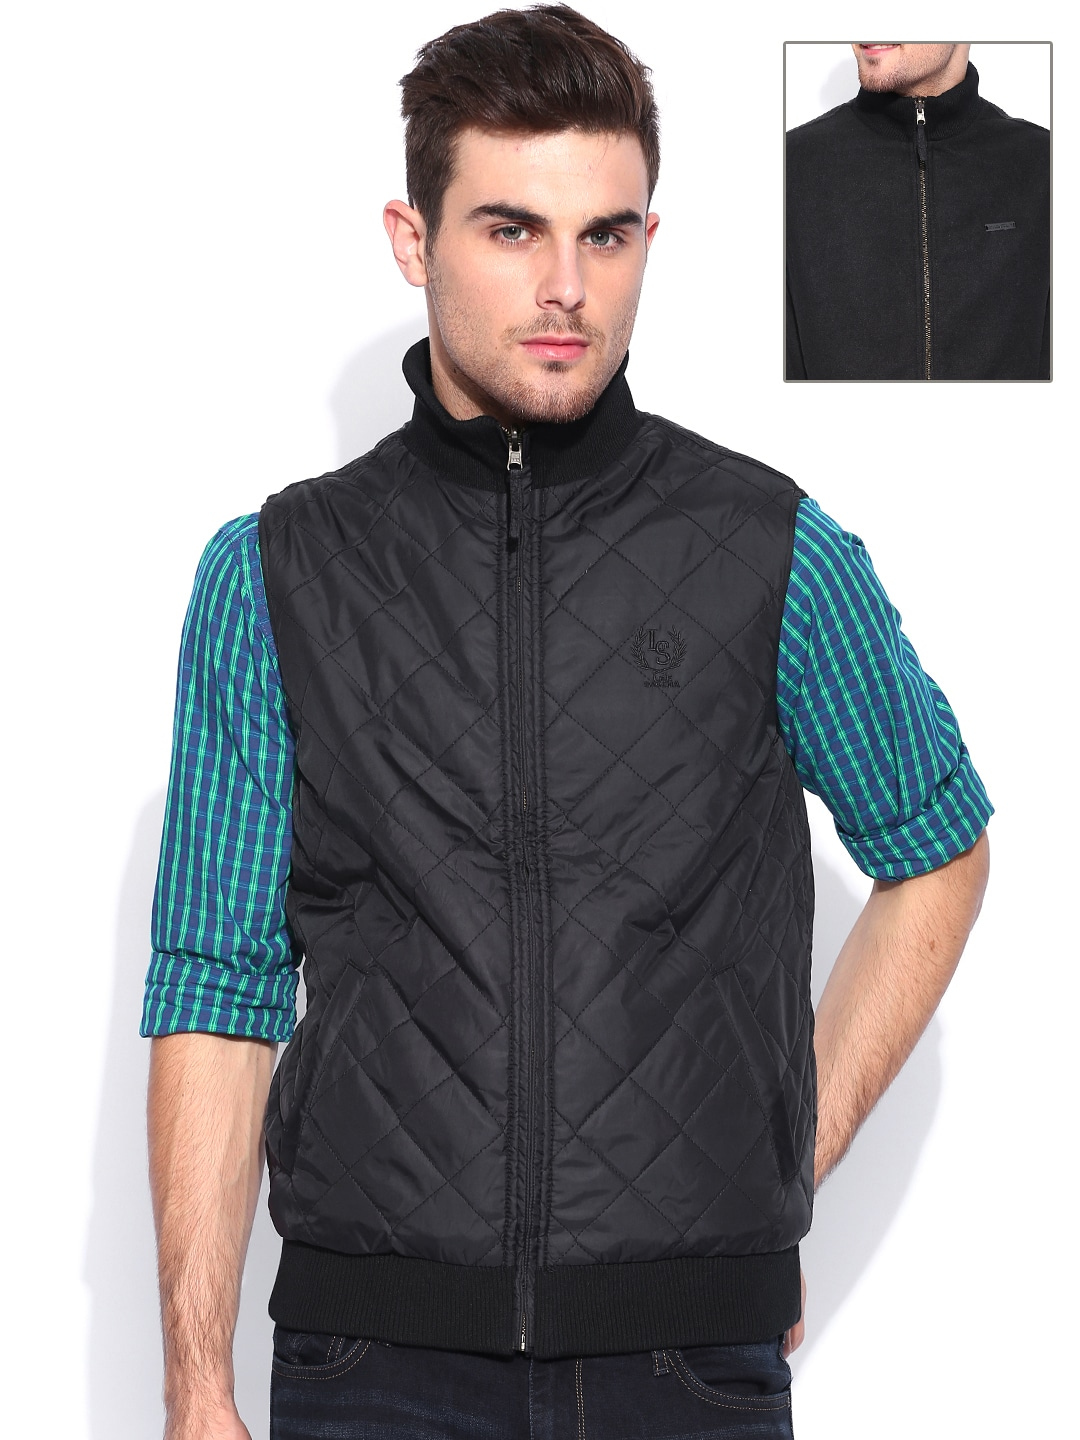 Lee Dark Green & Charcoal Grey Kingston Sleeveless Reversible Jacket